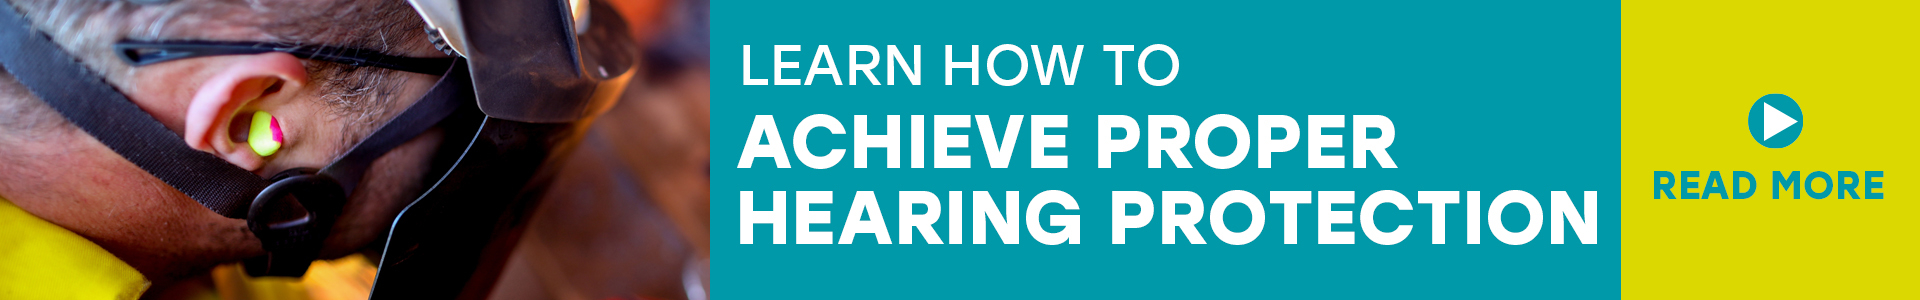 Hearing Protection Tips